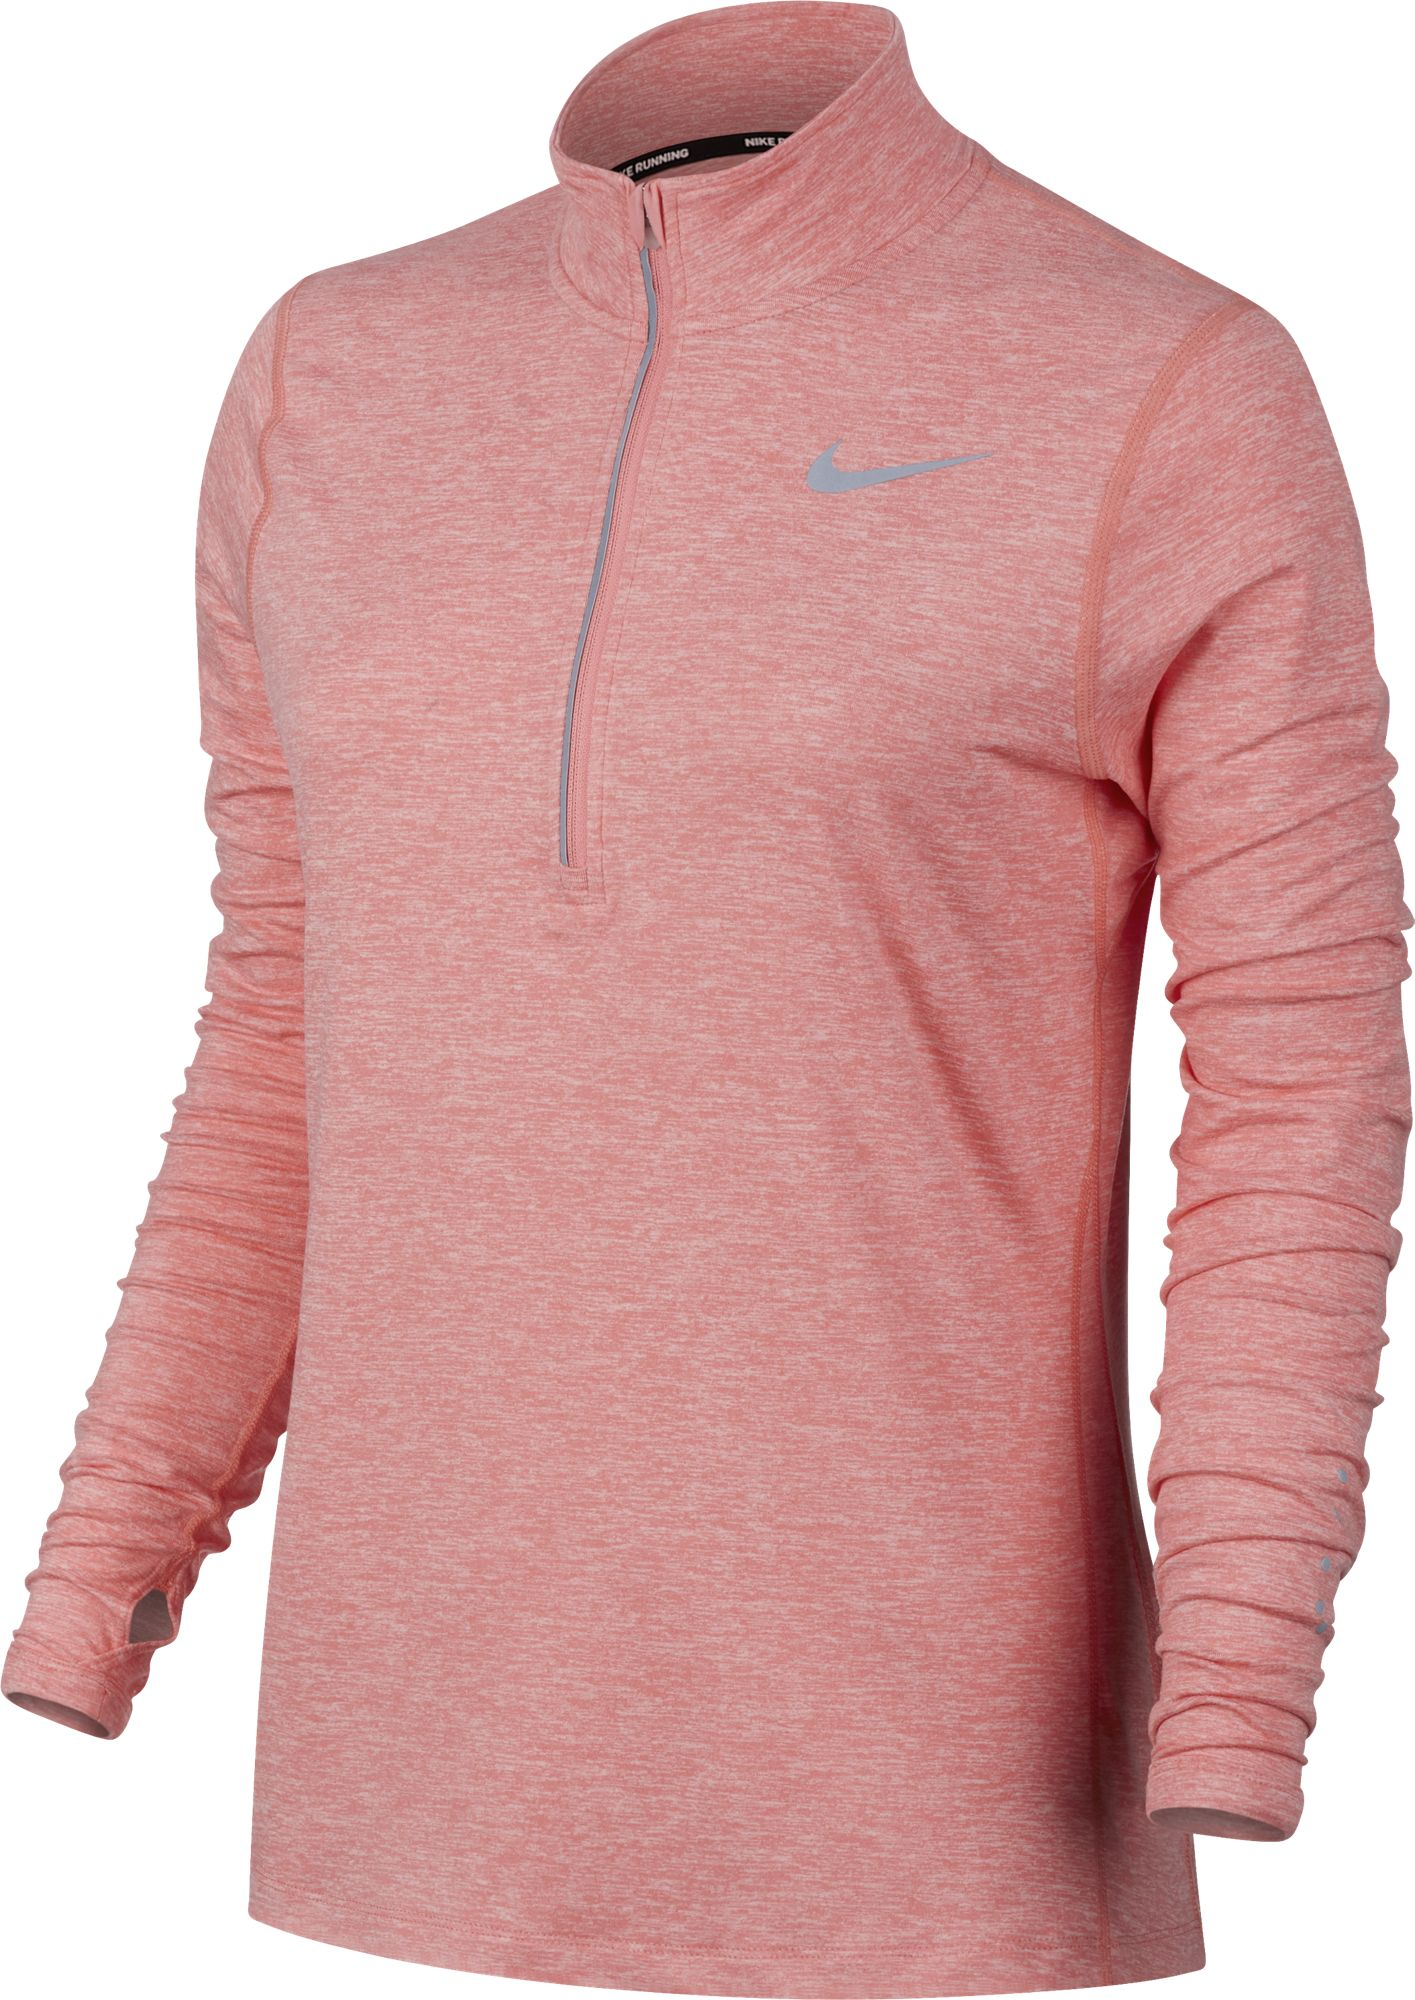 Nike Women 39 S Dry Element Half Zip The Lincolnshire